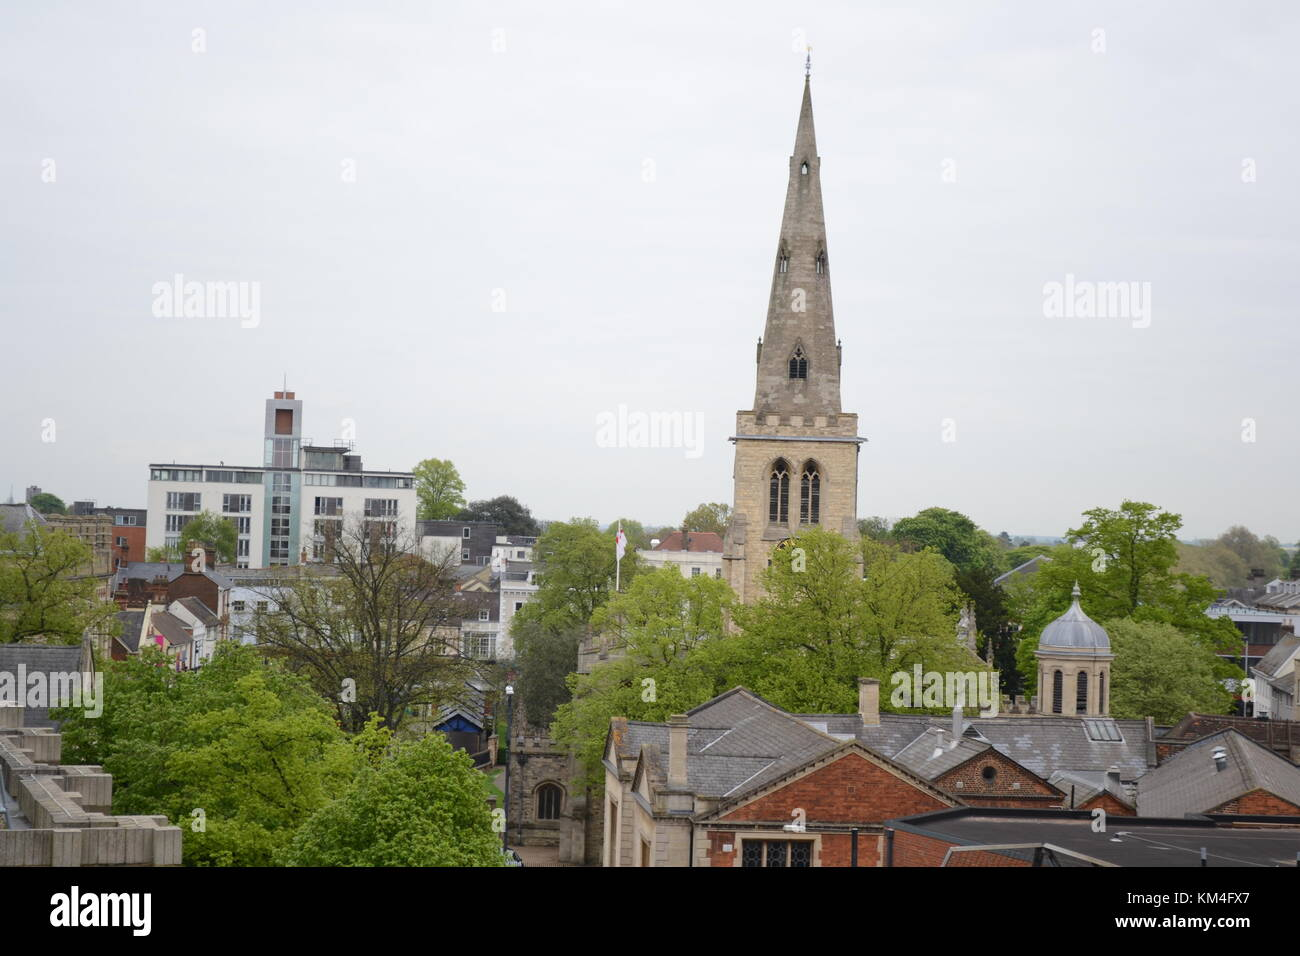 The view from a multistory car park in Bedford - Stock Image